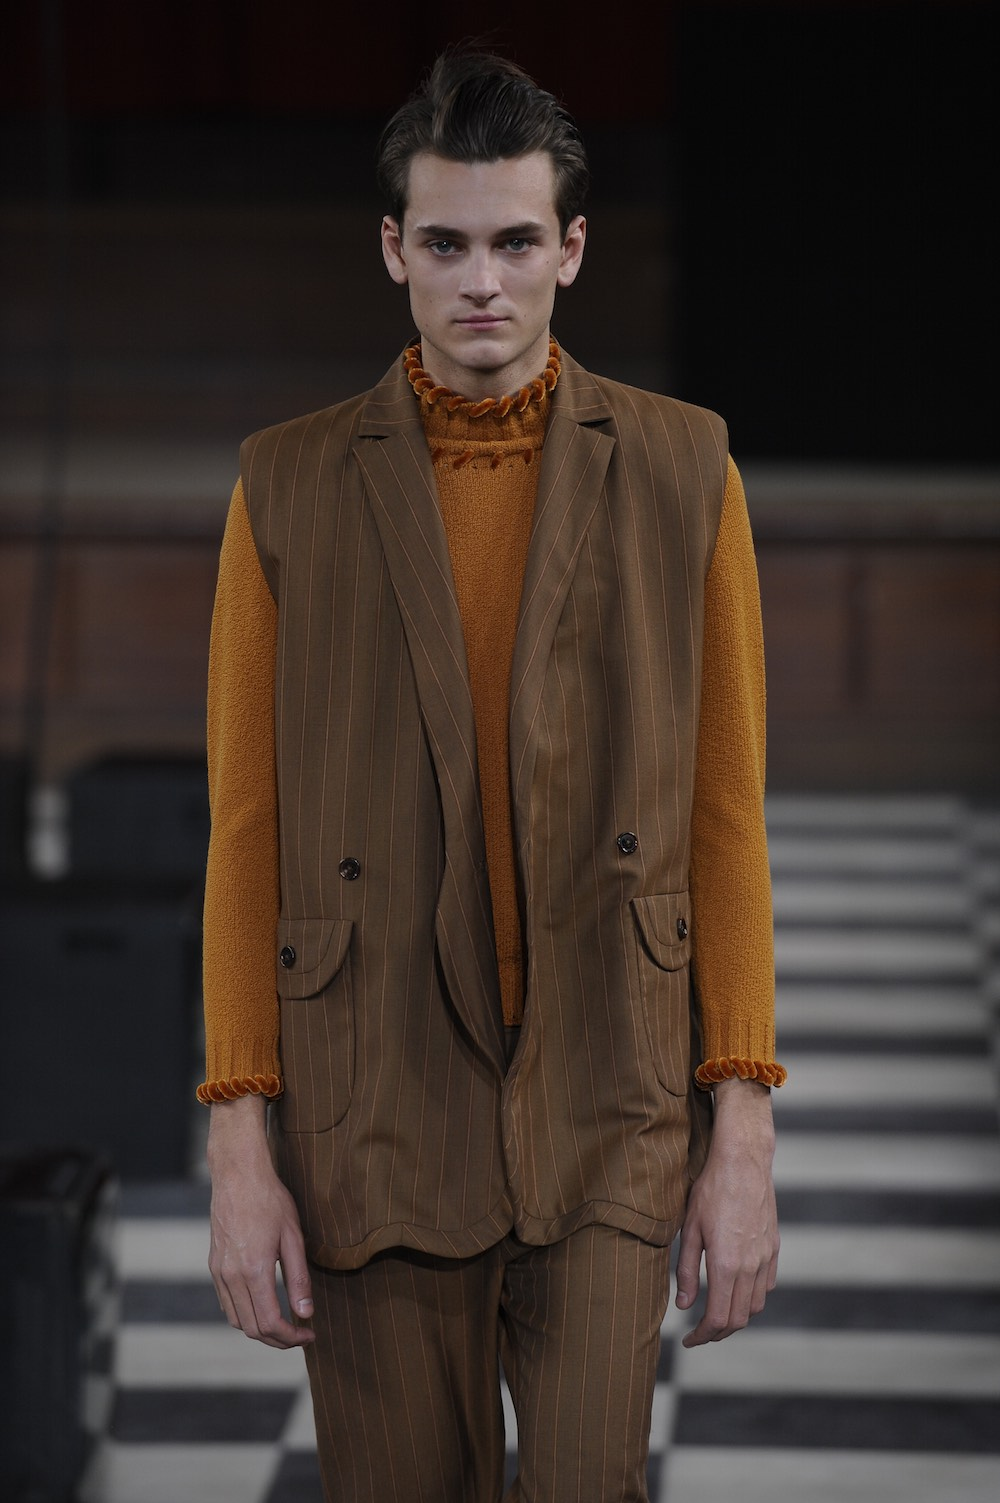 Coline Gauthier at LCFMA18 Menswear. Shot by Roger Dean.